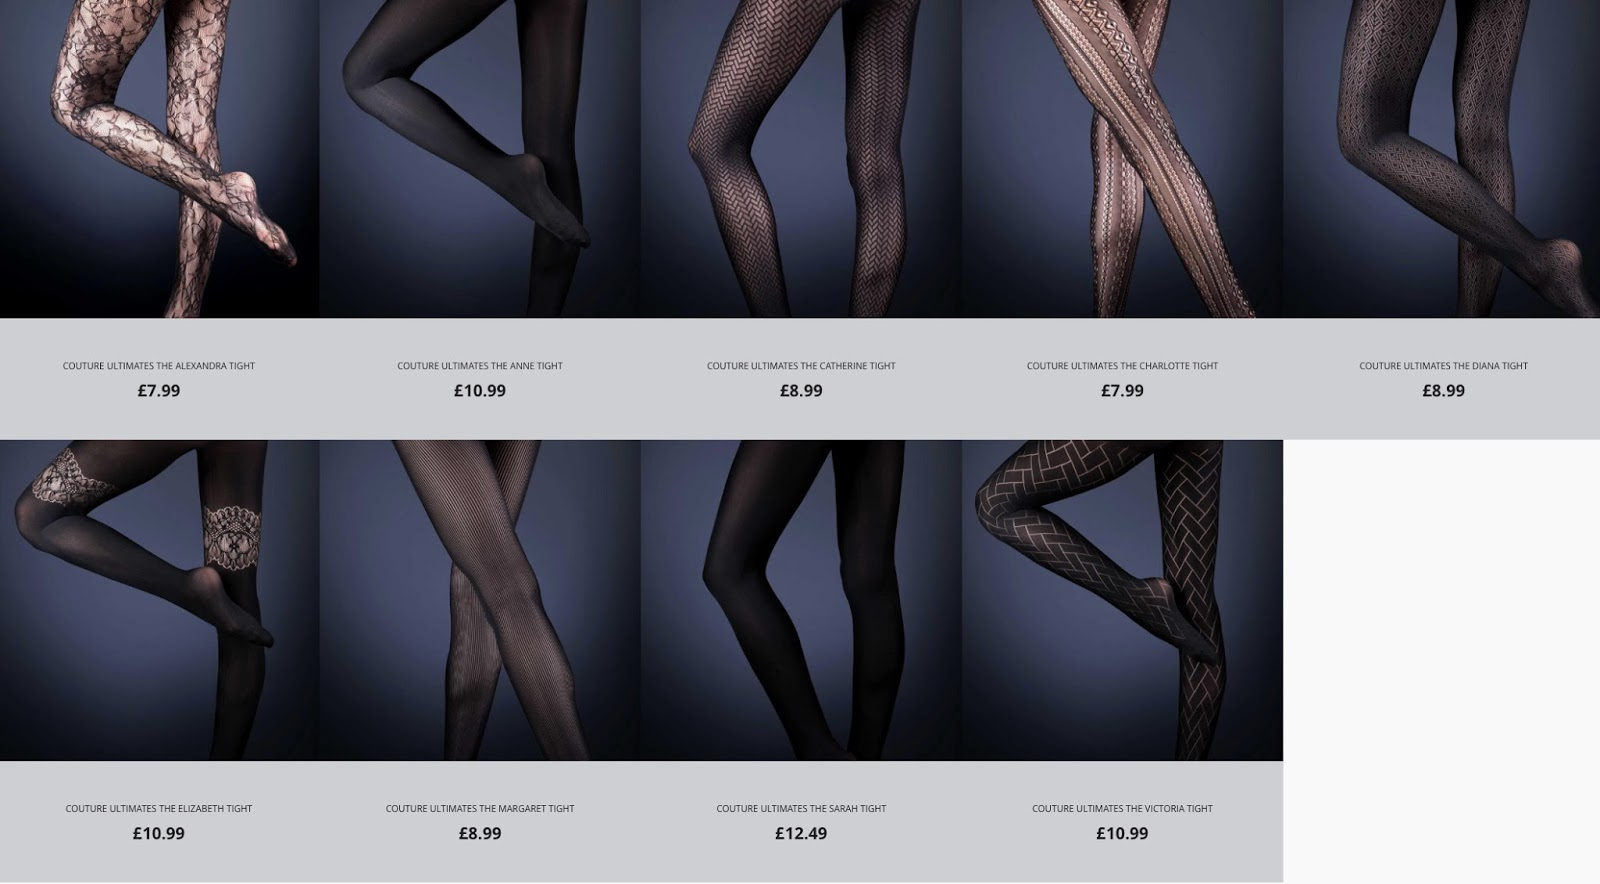 725f38a7b ... seamless and ladder-proof tights. The website provides information  about the collection and you can purchase all nine Couture Ultimates styles  directly.